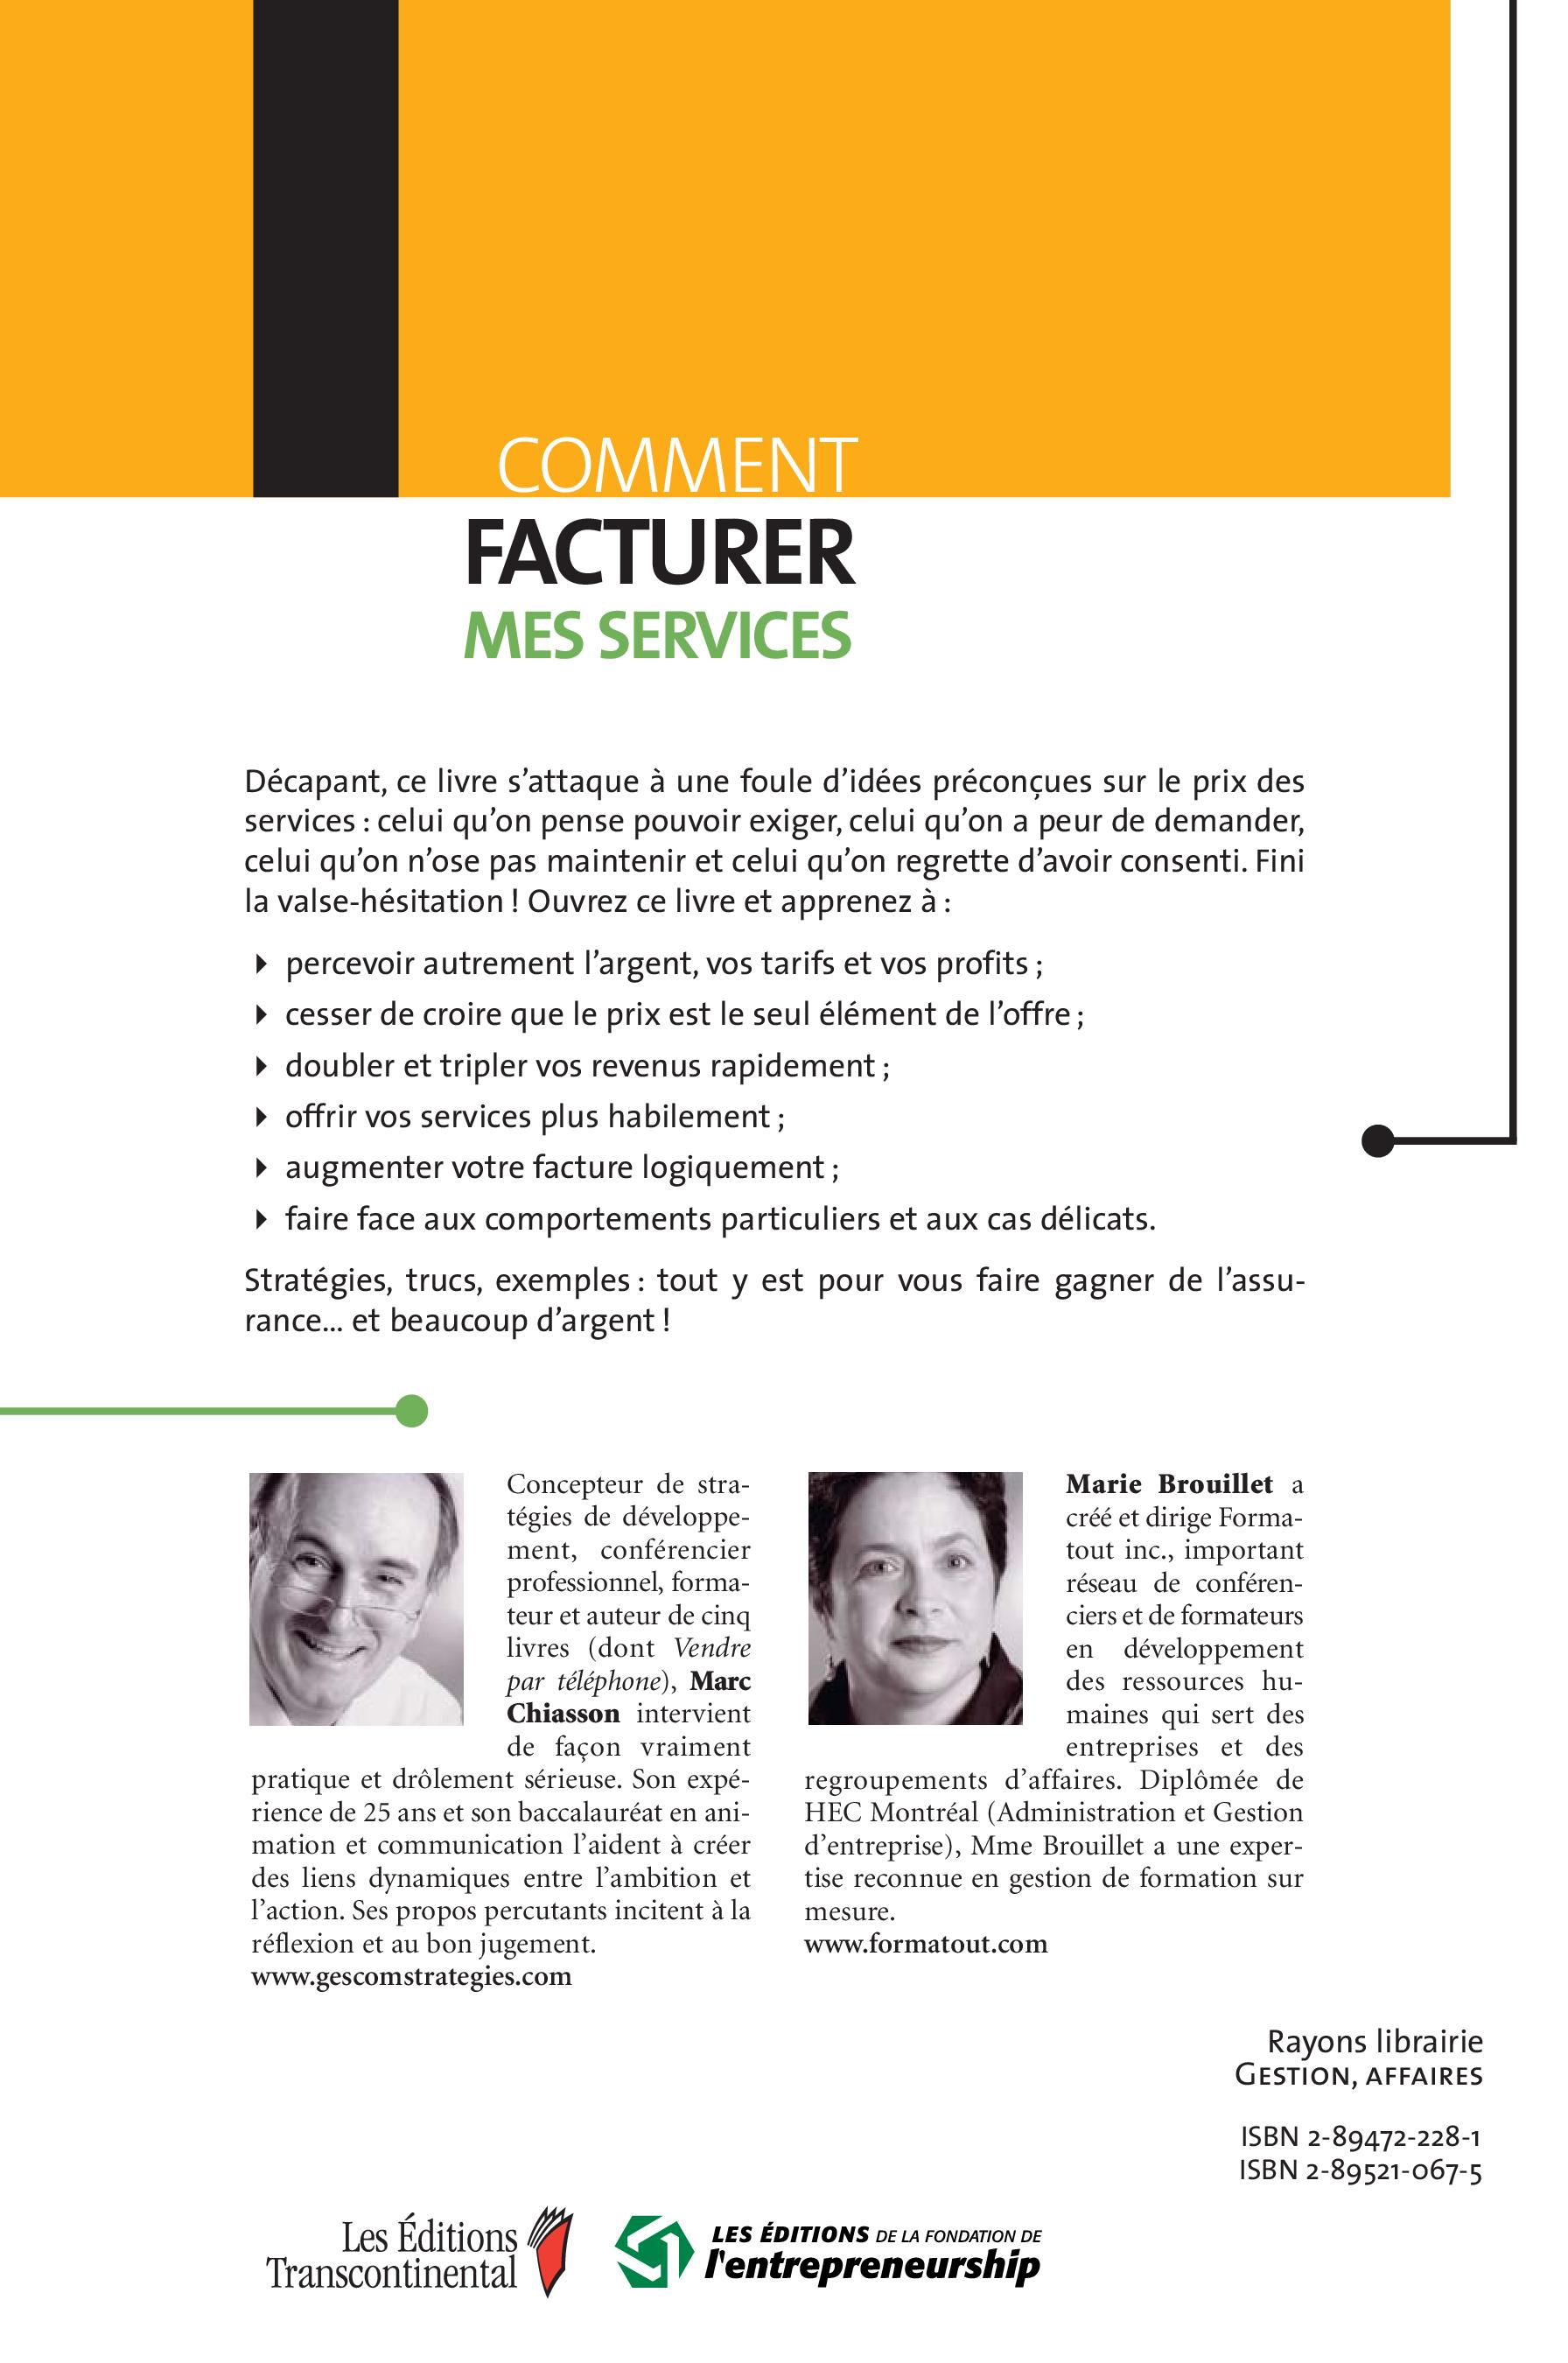 Comment facturer mes services, Marie Brouillet revers